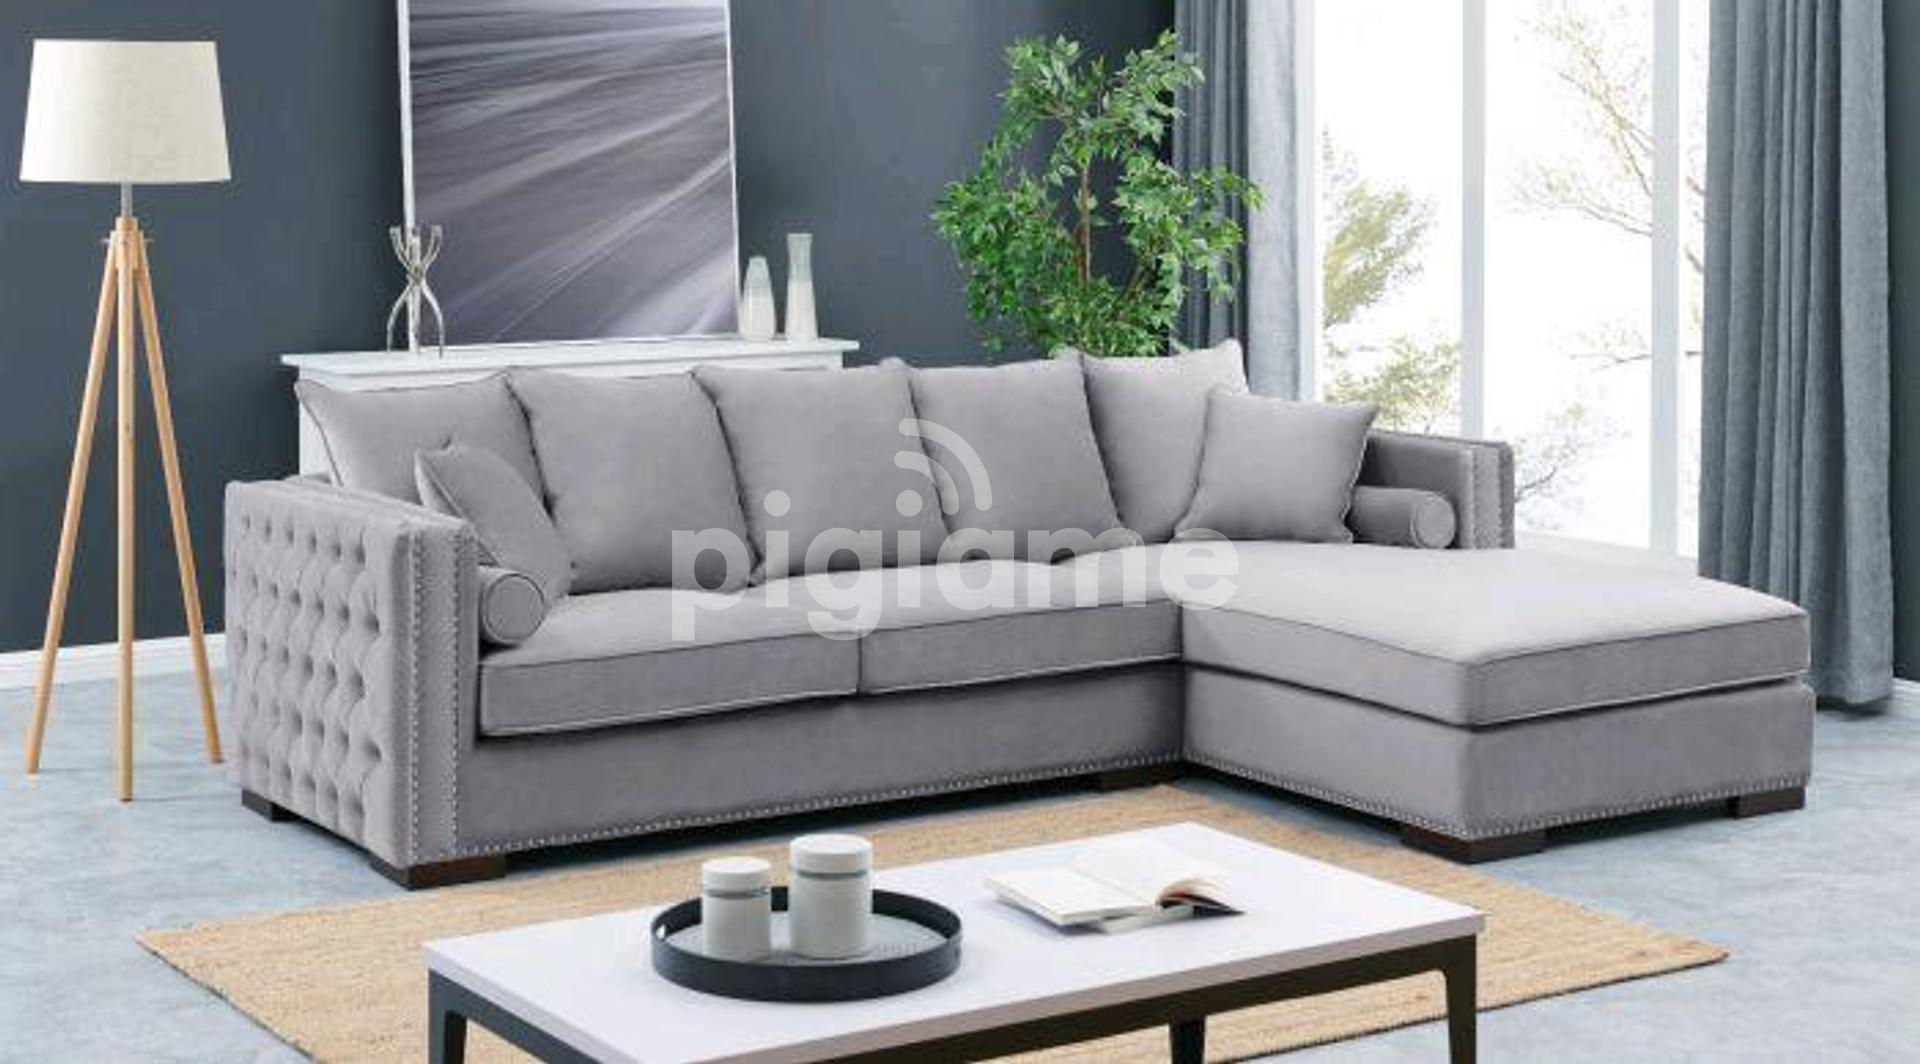 Five Seater L Shaped Sofas Best L Shaped Sofa Set Designs Sofas For Sale In Nairobi Kenya In Nairobi Pigiame